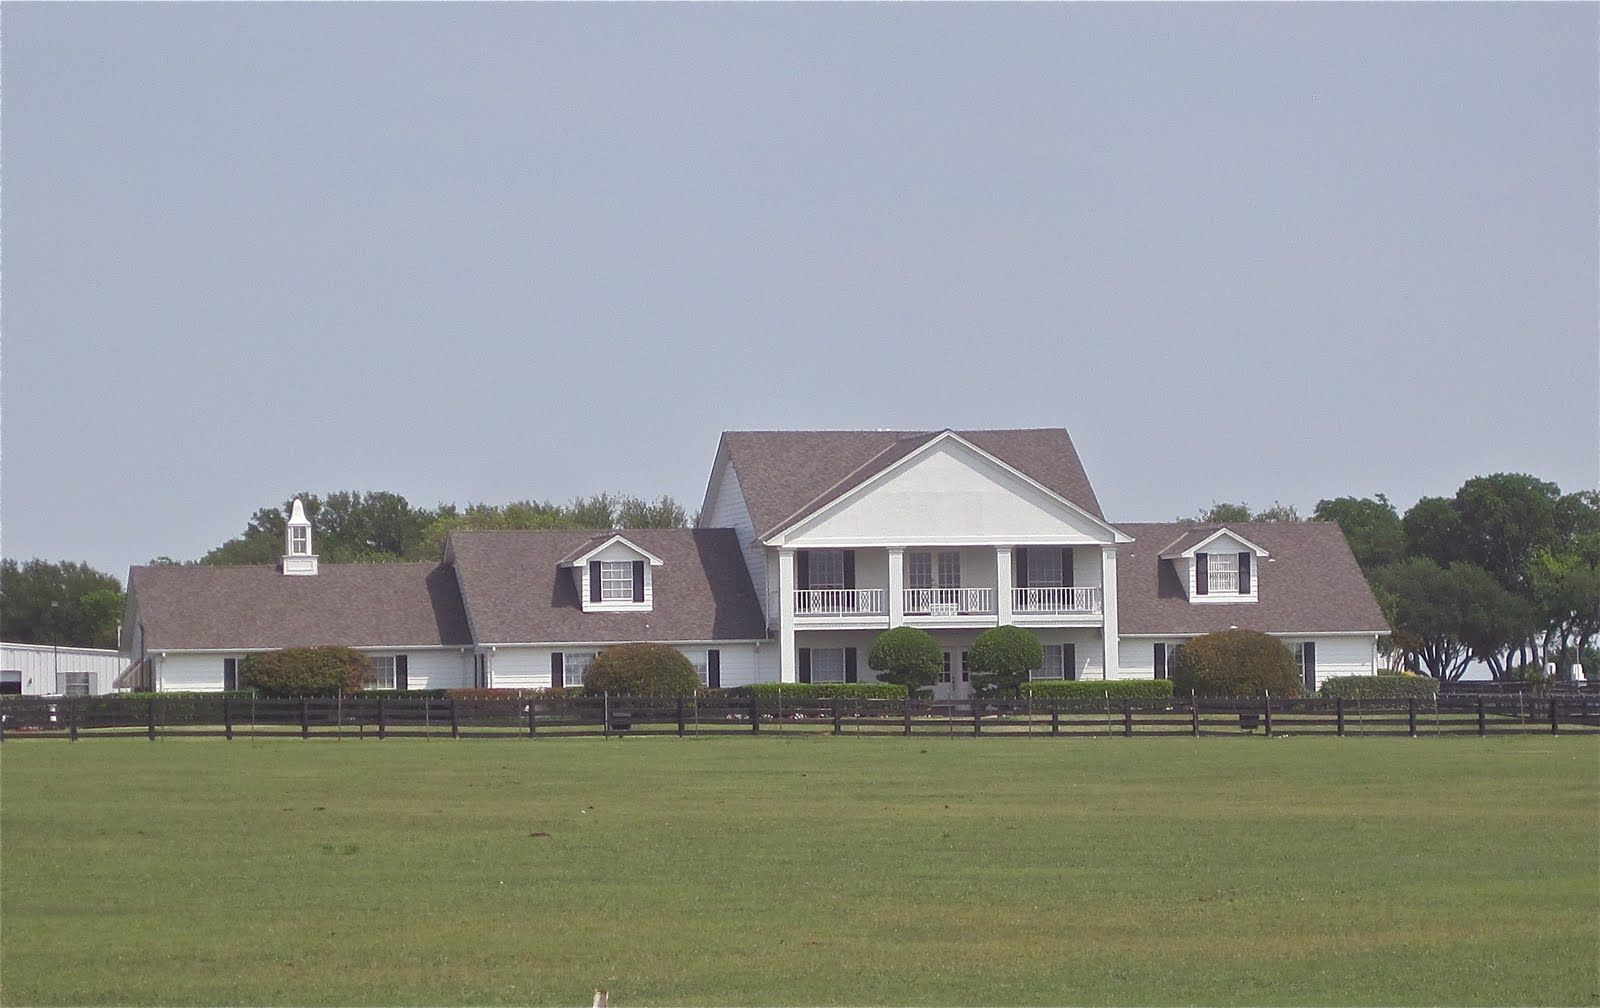 Dallas tv show flight plan southfork ranch is hopping for Southfork ranch house plans